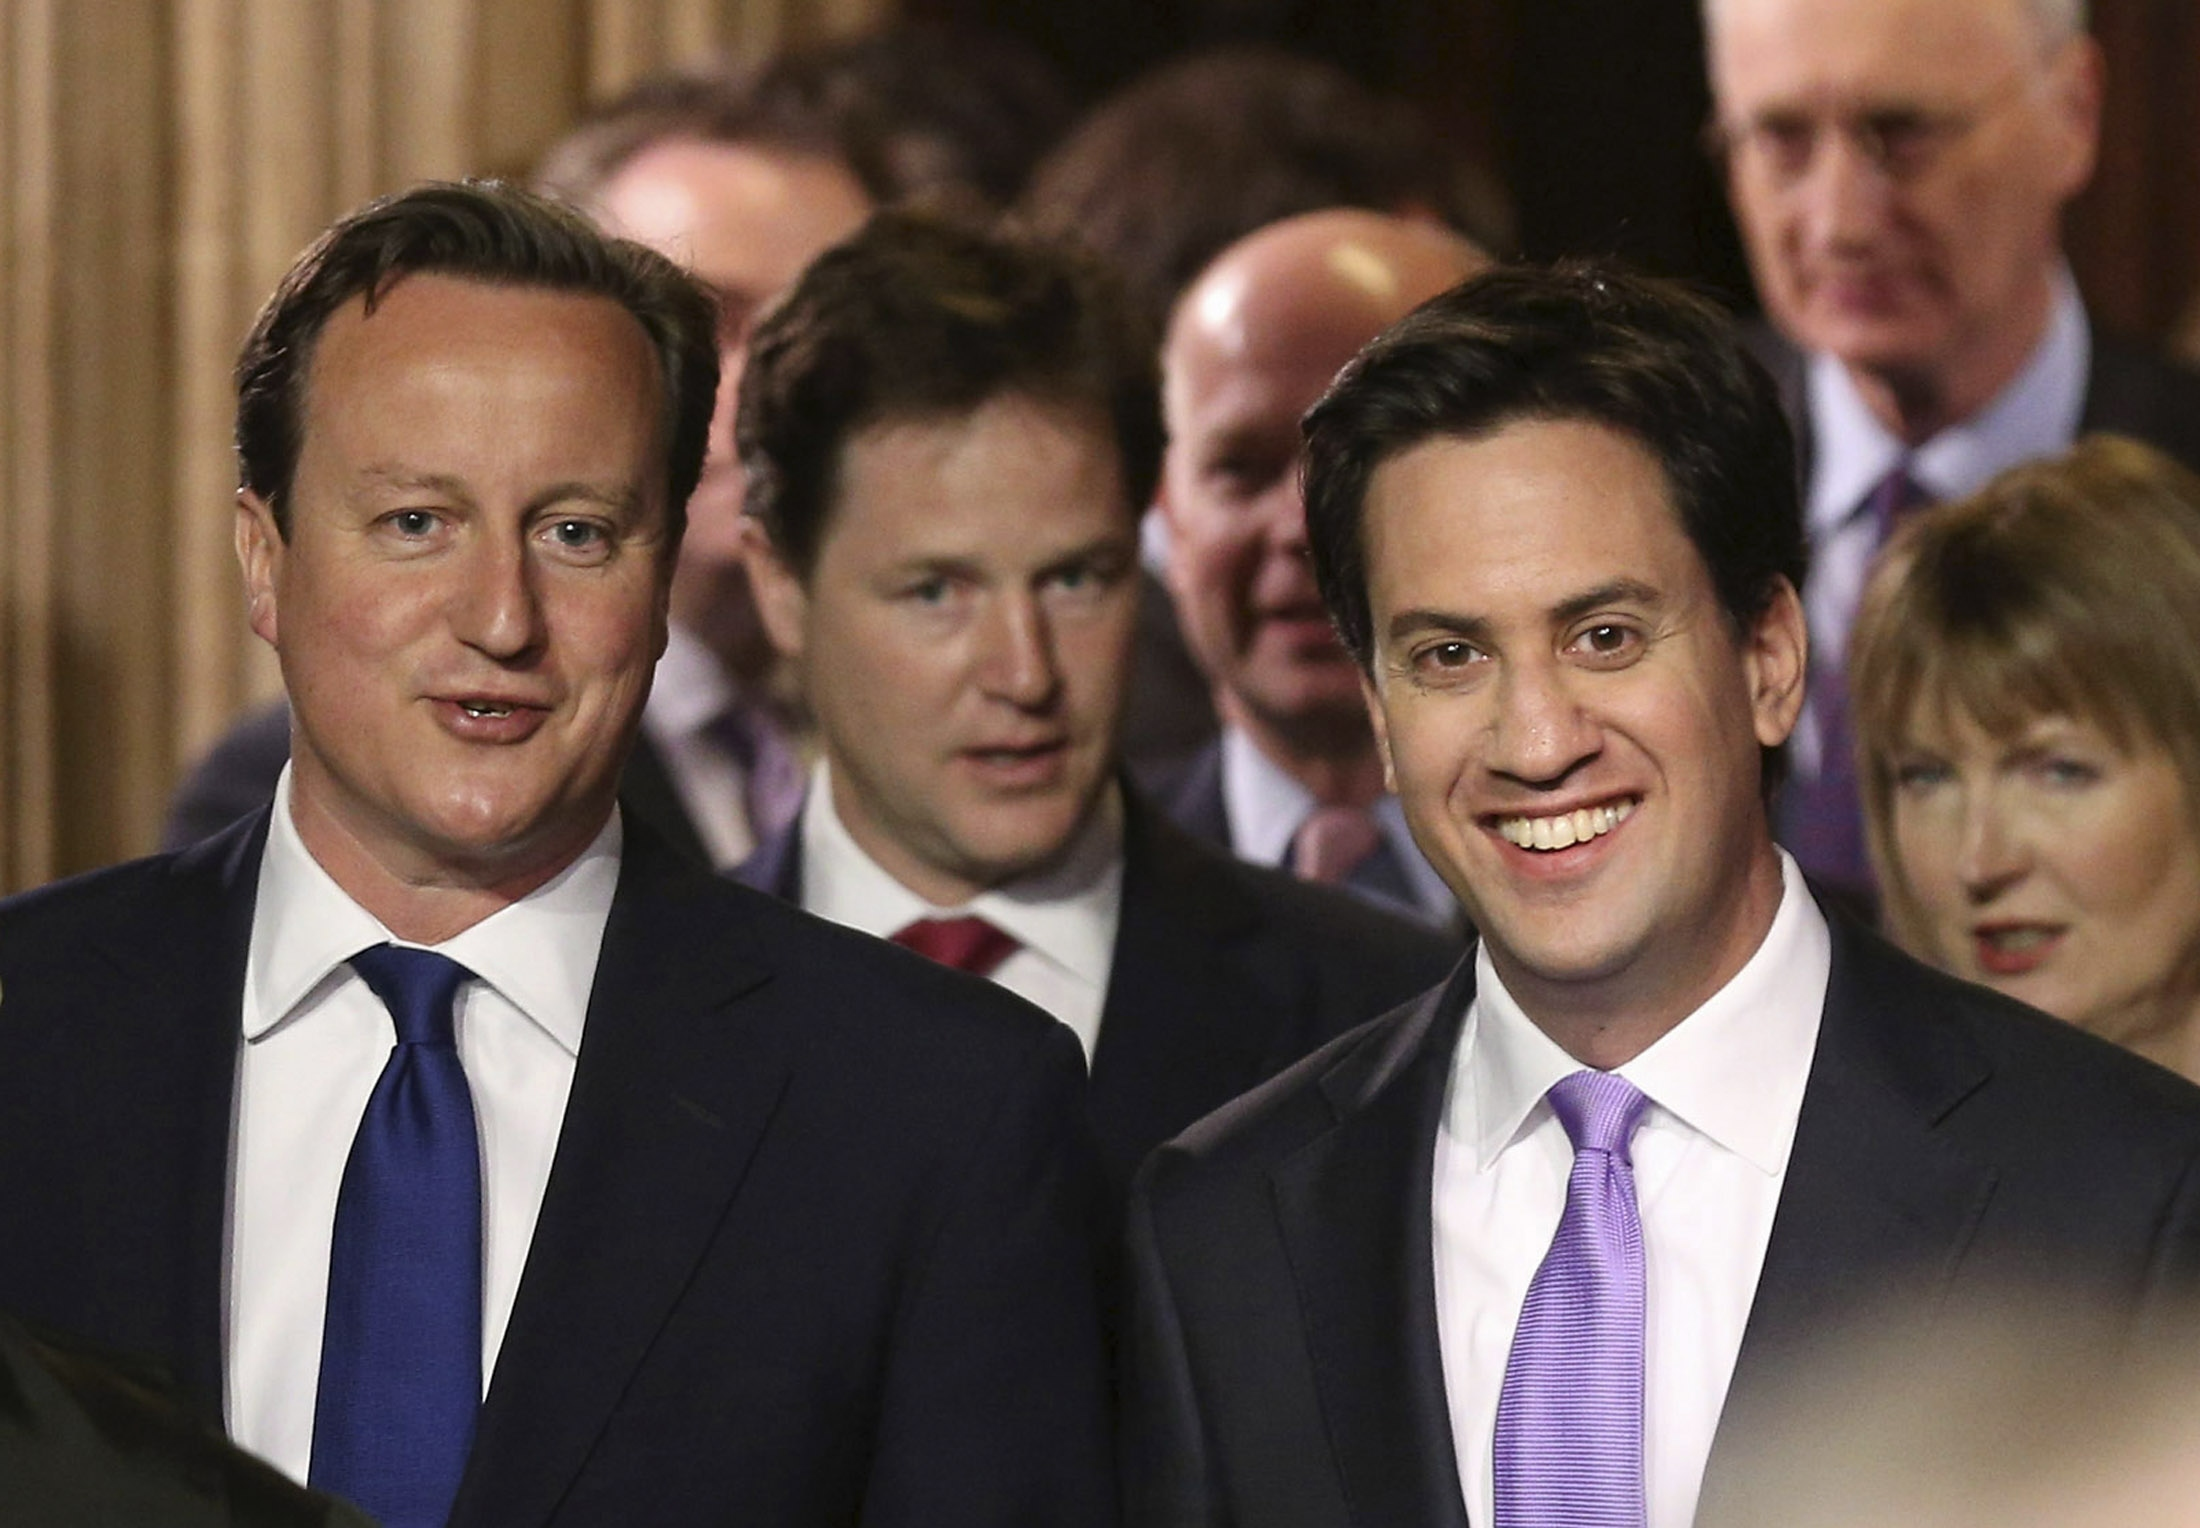 Britain's Prime Minster David Cameron and opposition Labour Party leader Ed Miliband attend the State Opening of Parliament in London